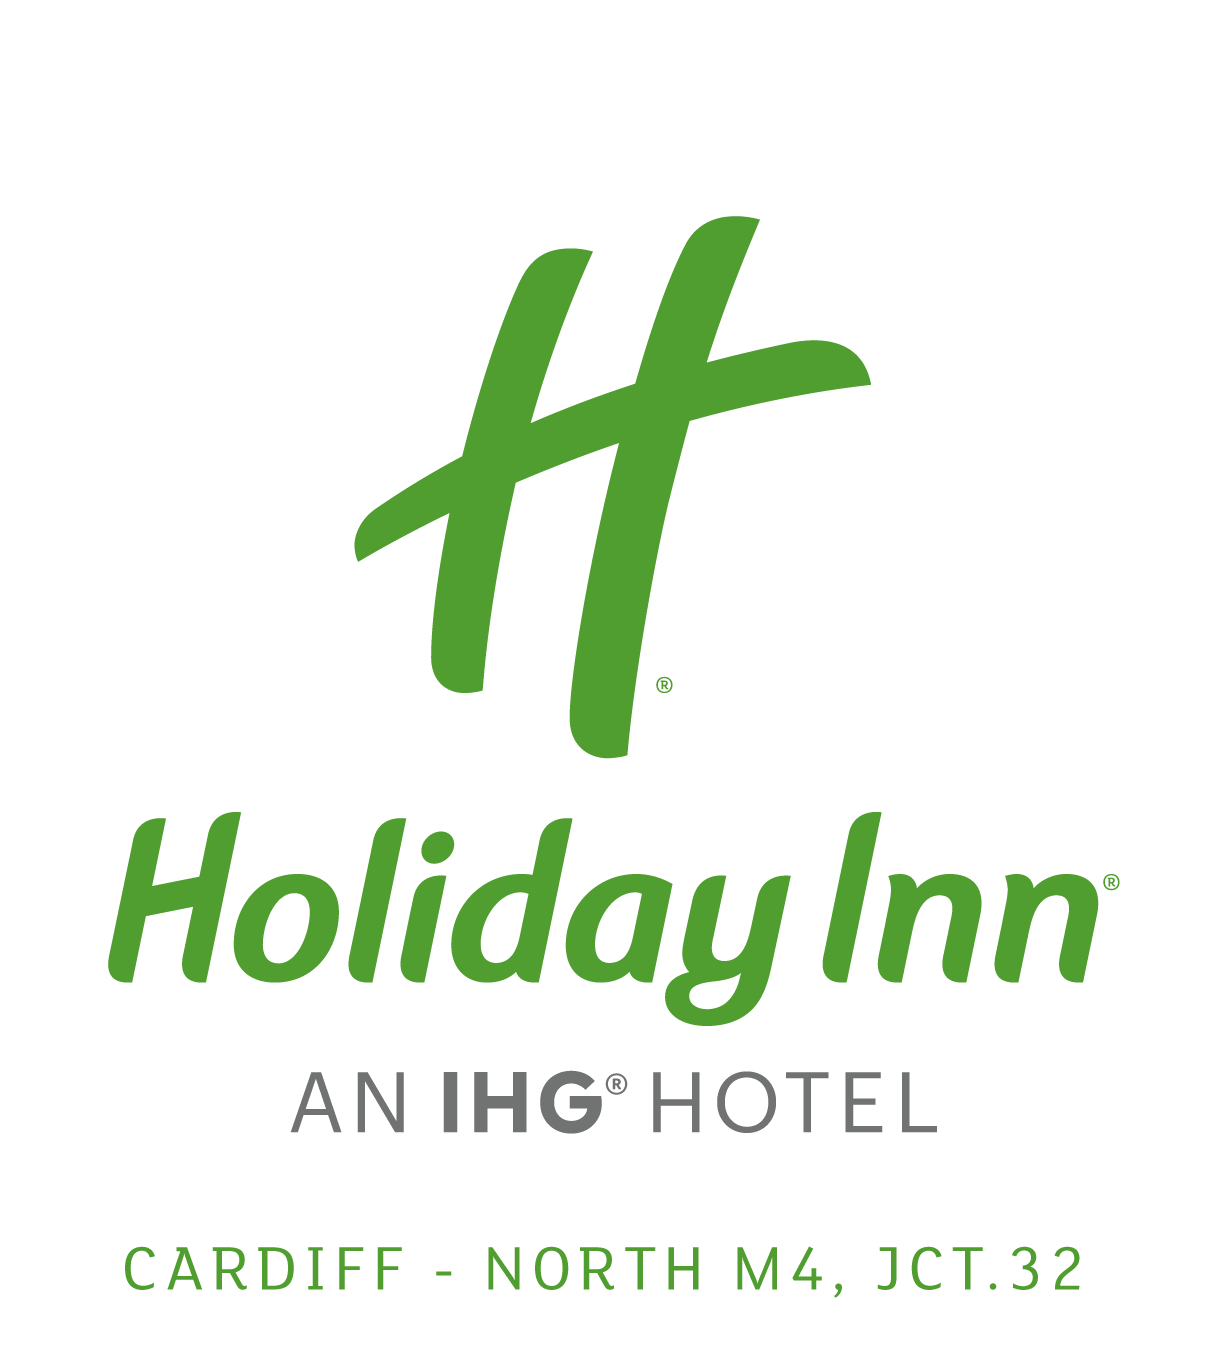 1959Holiday Inn Hotel Cardiff – North M4, Junction 32